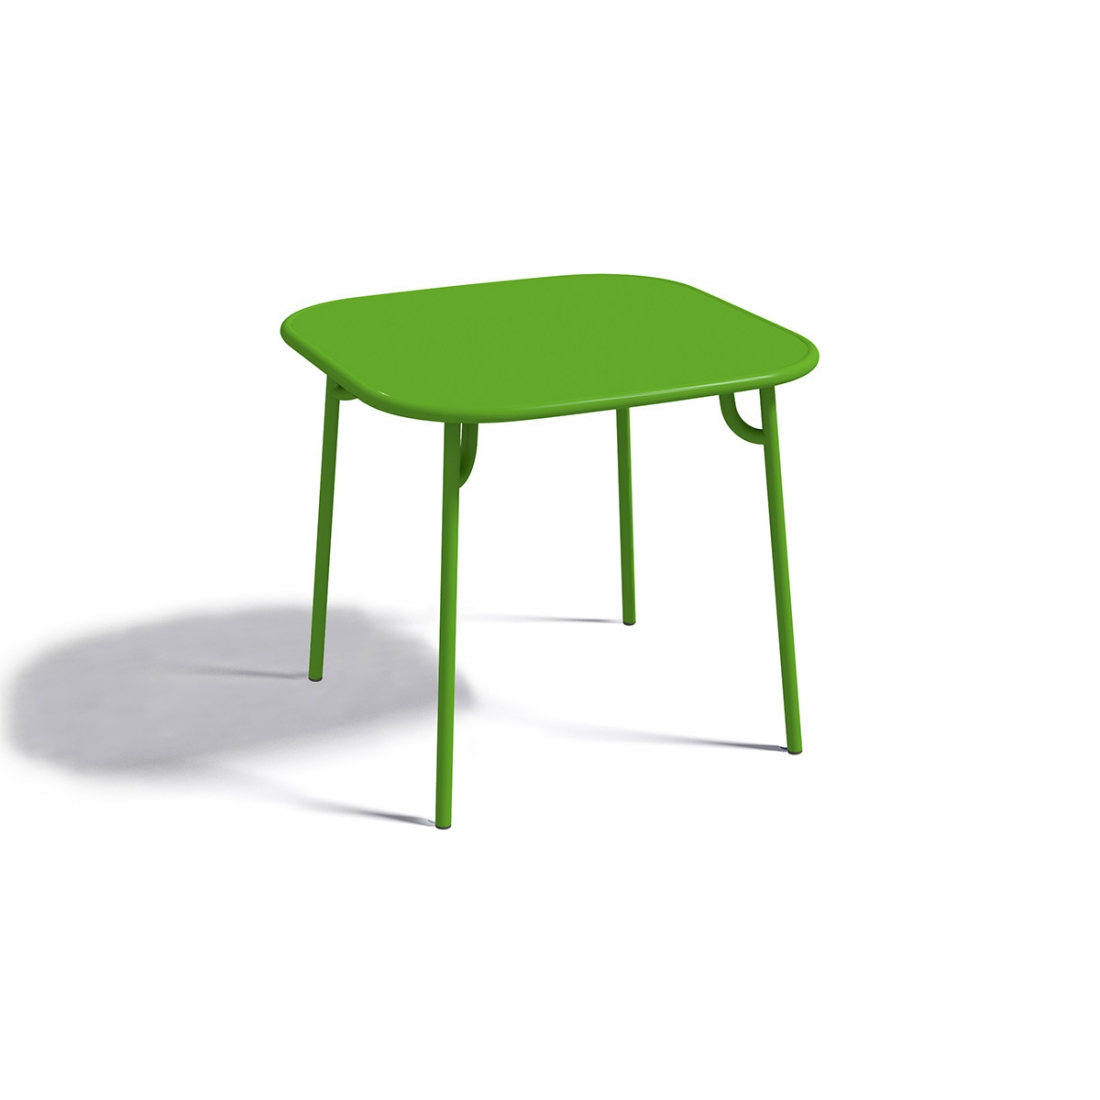 Table de jardin design pour enfantweek end par oxyo - Table de jardin design ...